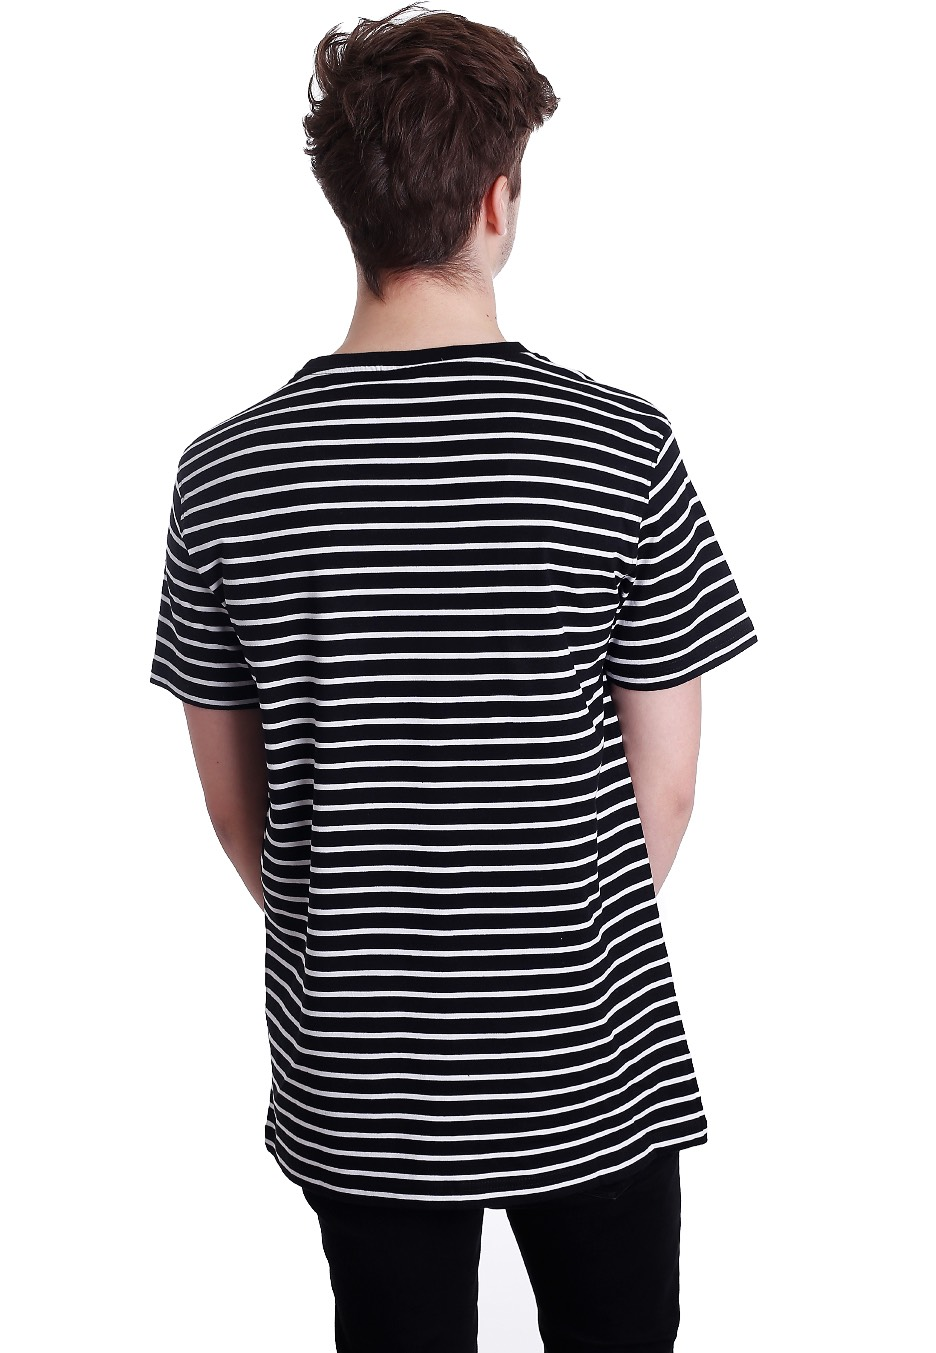 urban classics striped black white t shirt. Black Bedroom Furniture Sets. Home Design Ideas